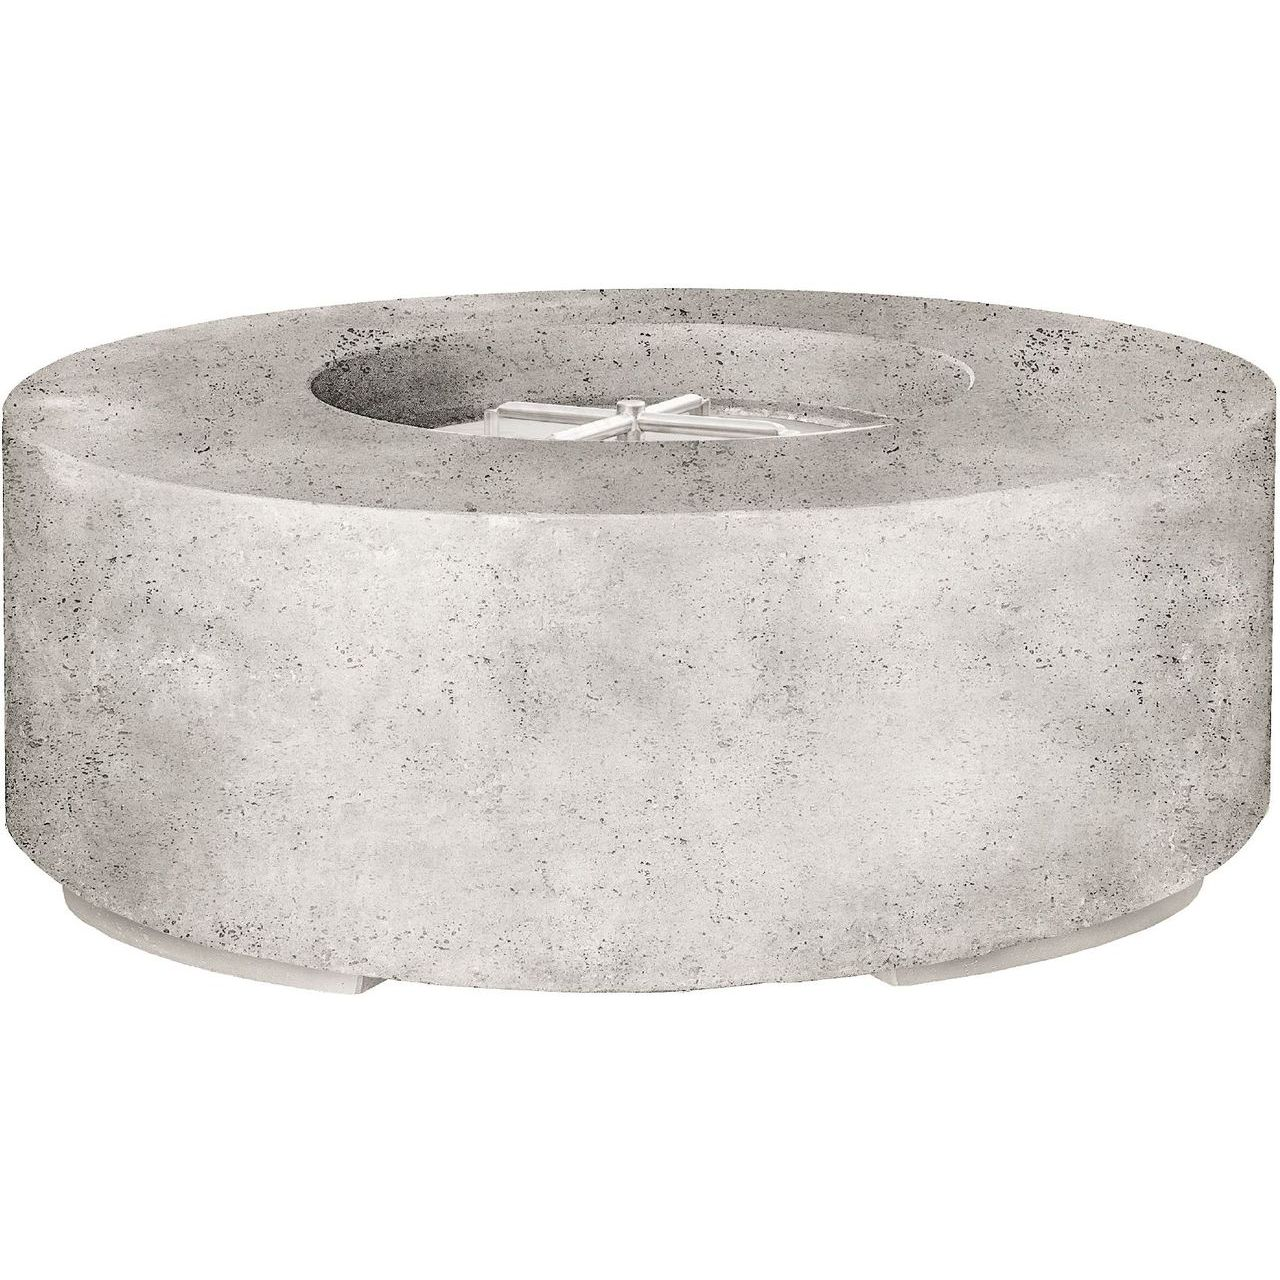 Prism Hardscapes Rotondo Fire Bowl in Natural - LP